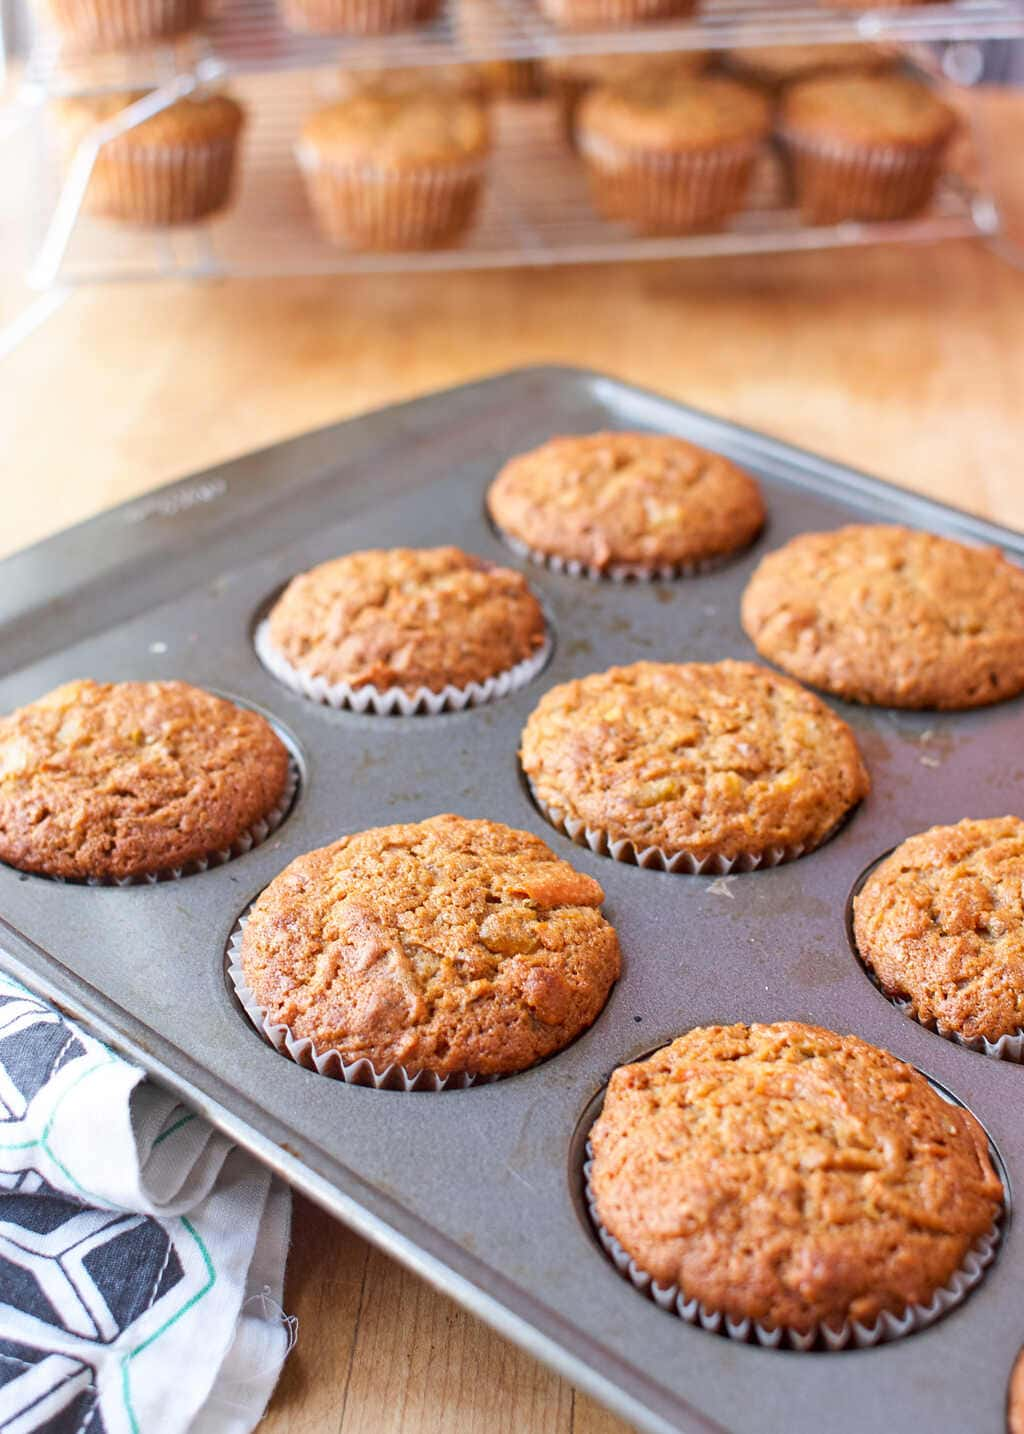 Baked carrot cupcakes in a muffin pan.